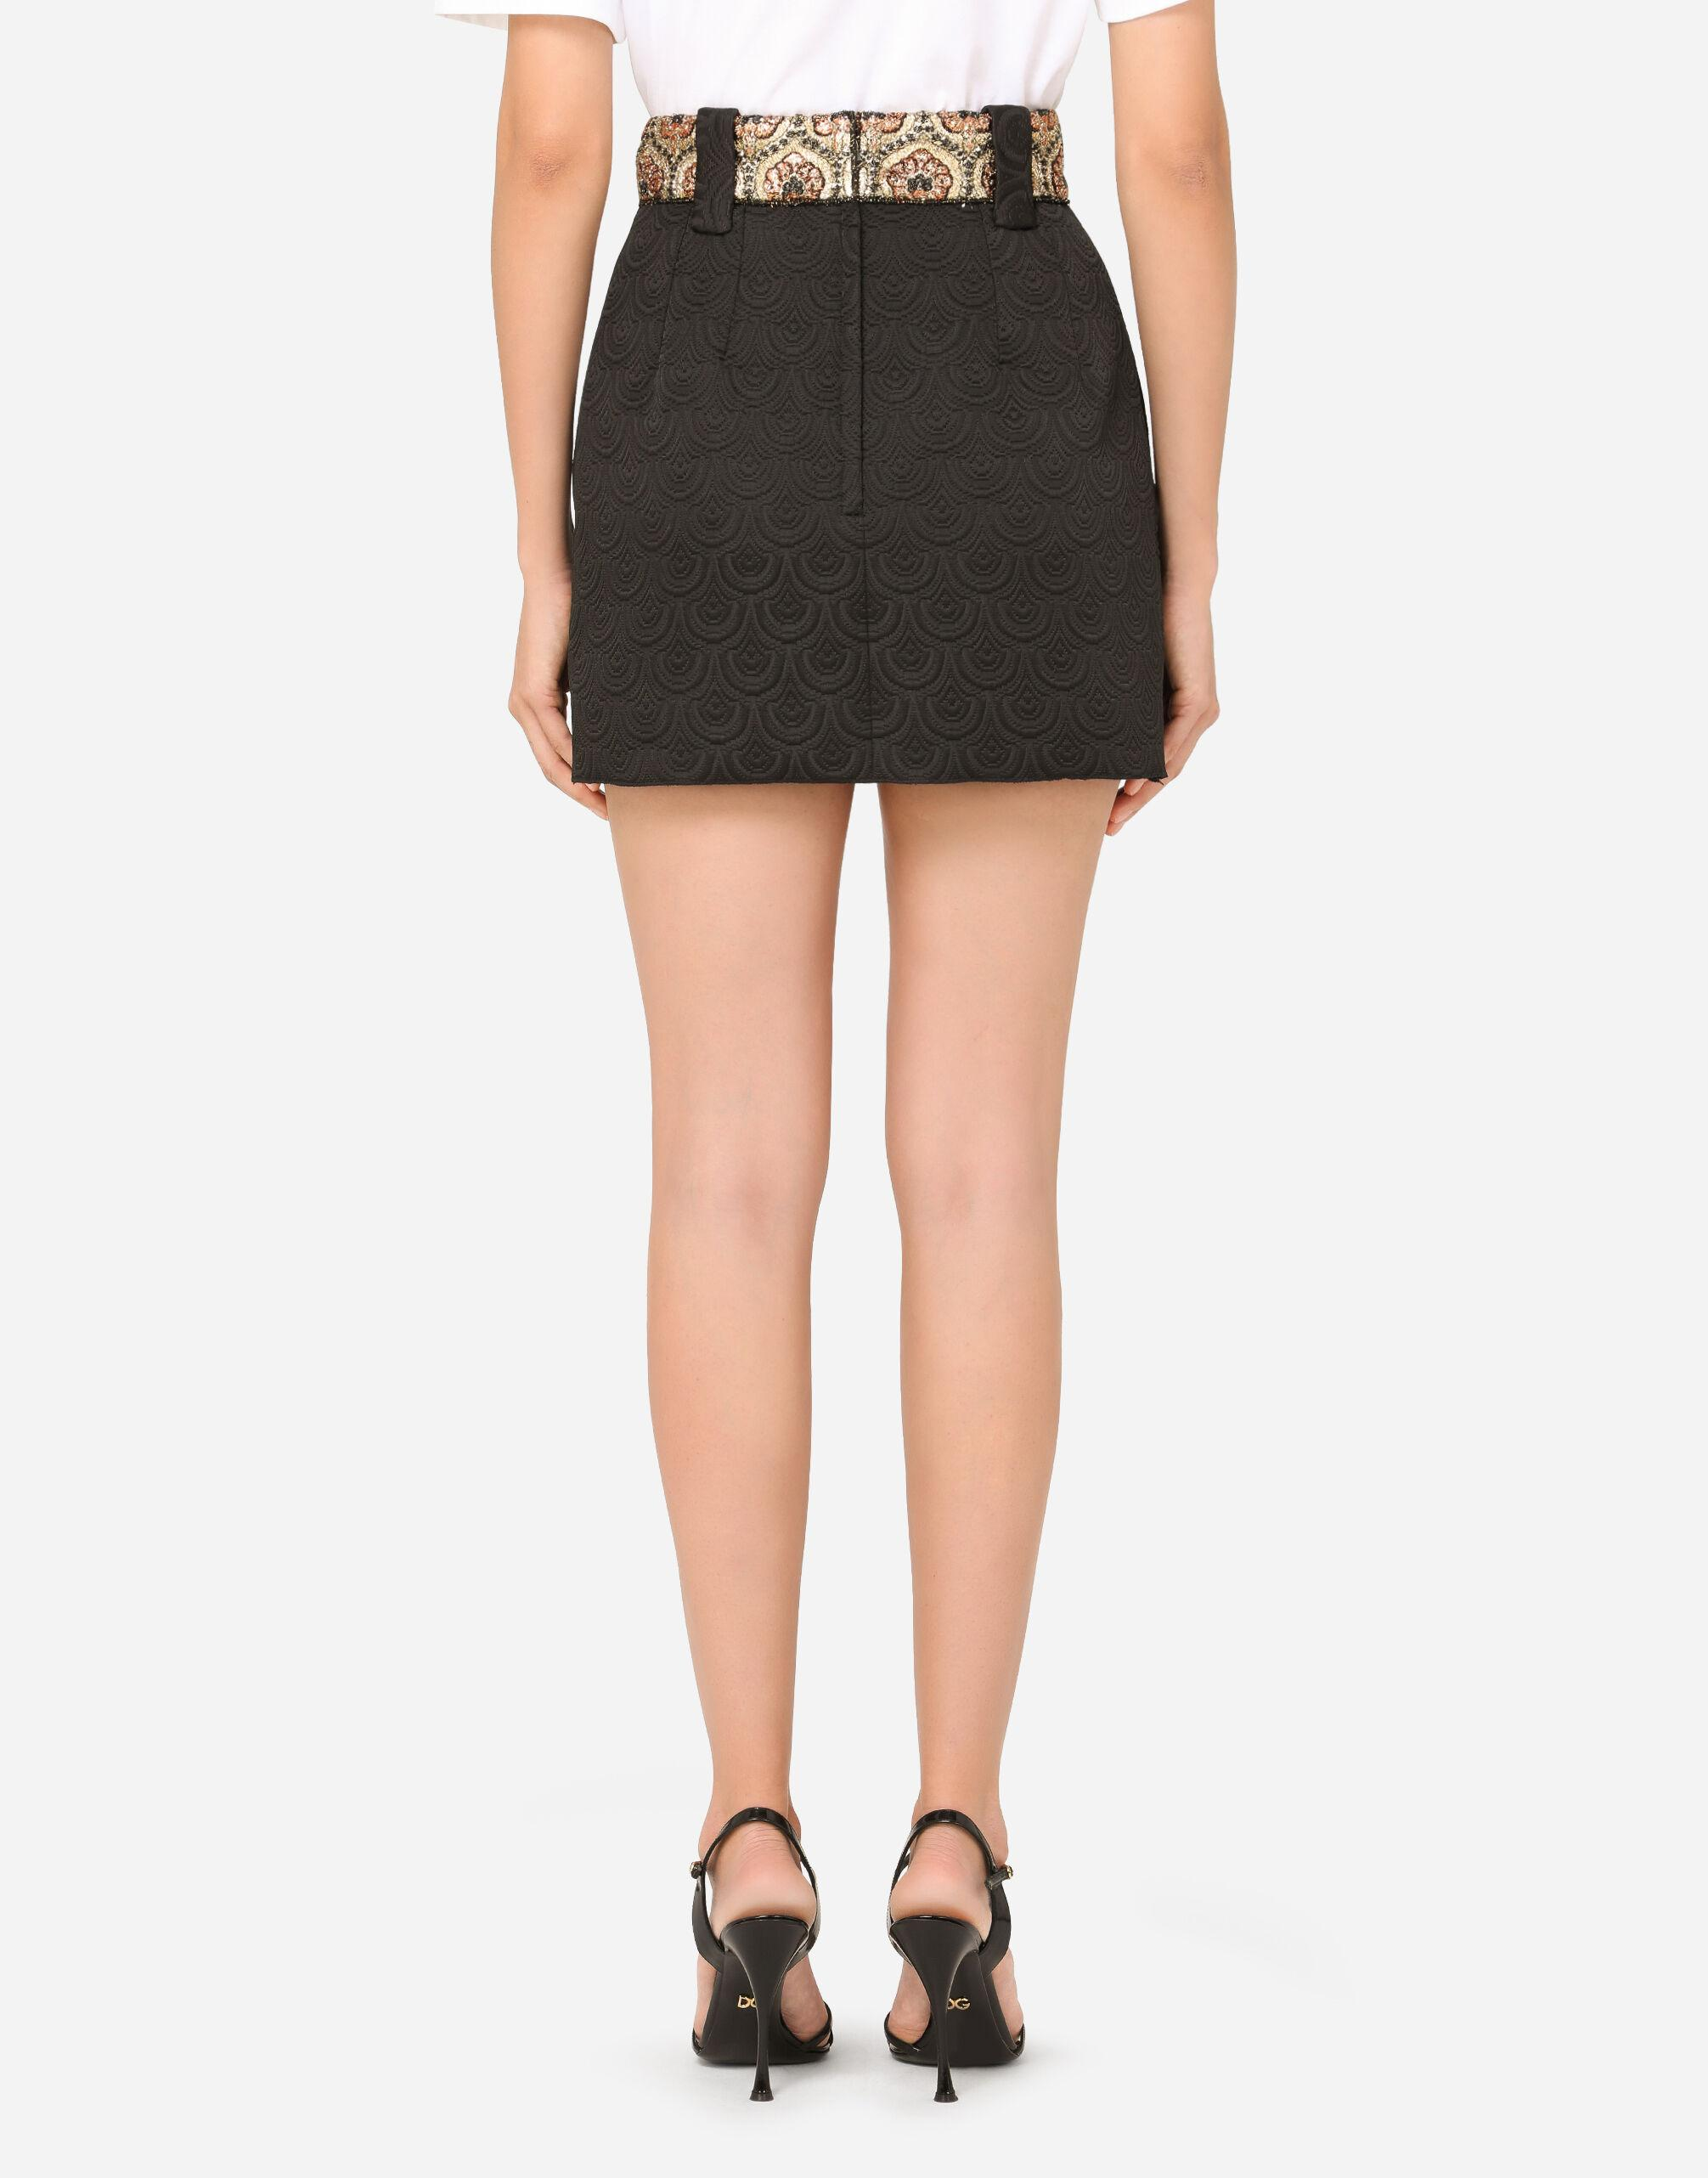 Short jacquard skirt with bejeweled buttons 1